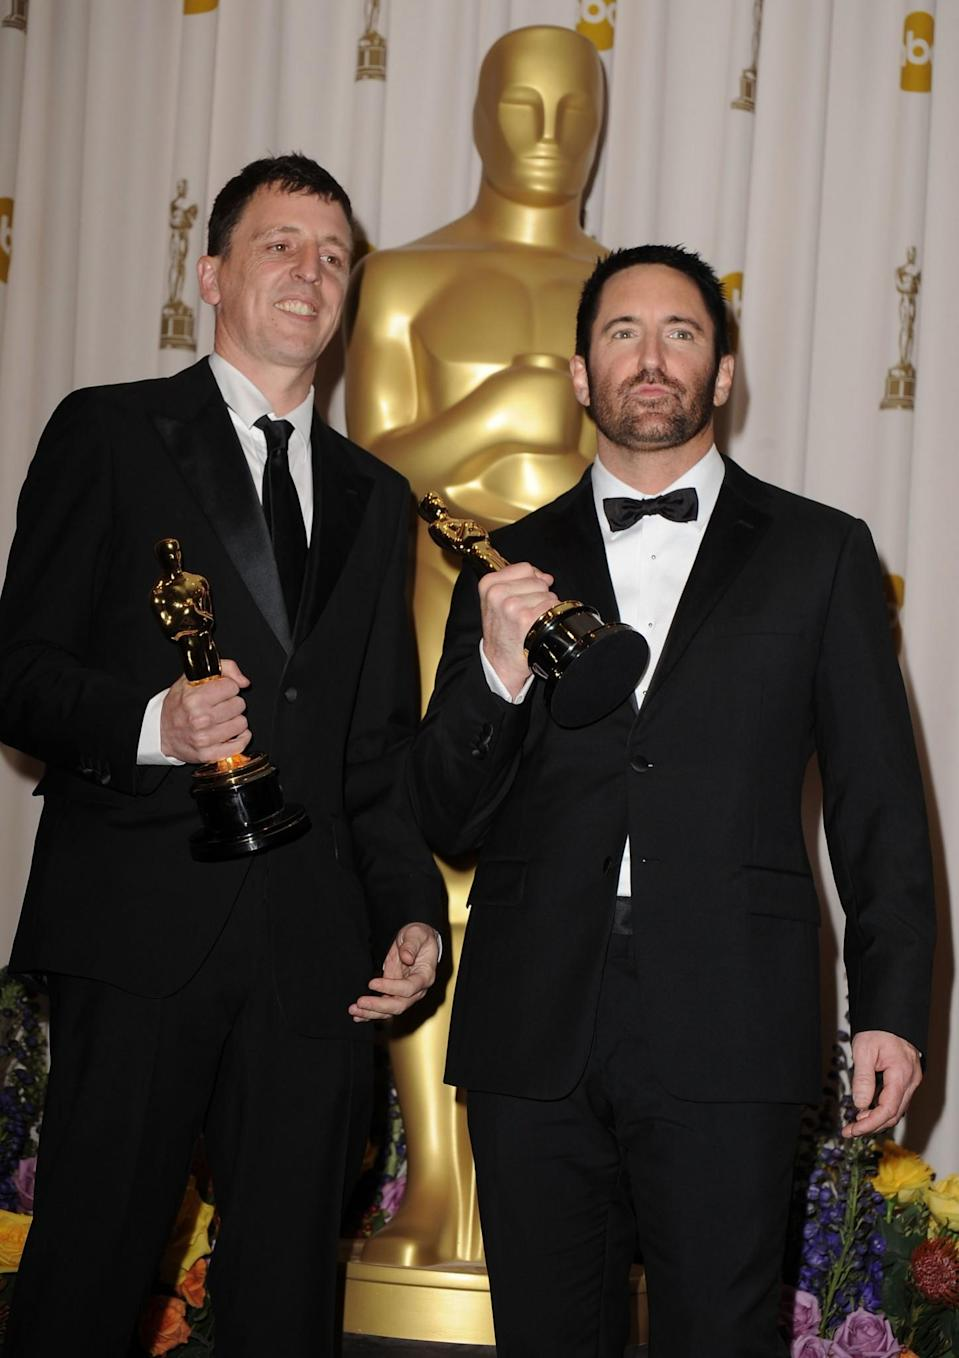 HOLLYWOOD, CA - FEBRUARY 27: Composers Atticus Ross (L) and Trent Reznor pose in the press room during the 83rd Annual Academy Awards held at the Kodak Theatre on February 27, 2011 in Hollywood, California. (Photo by Steve Granitz/WireImage)